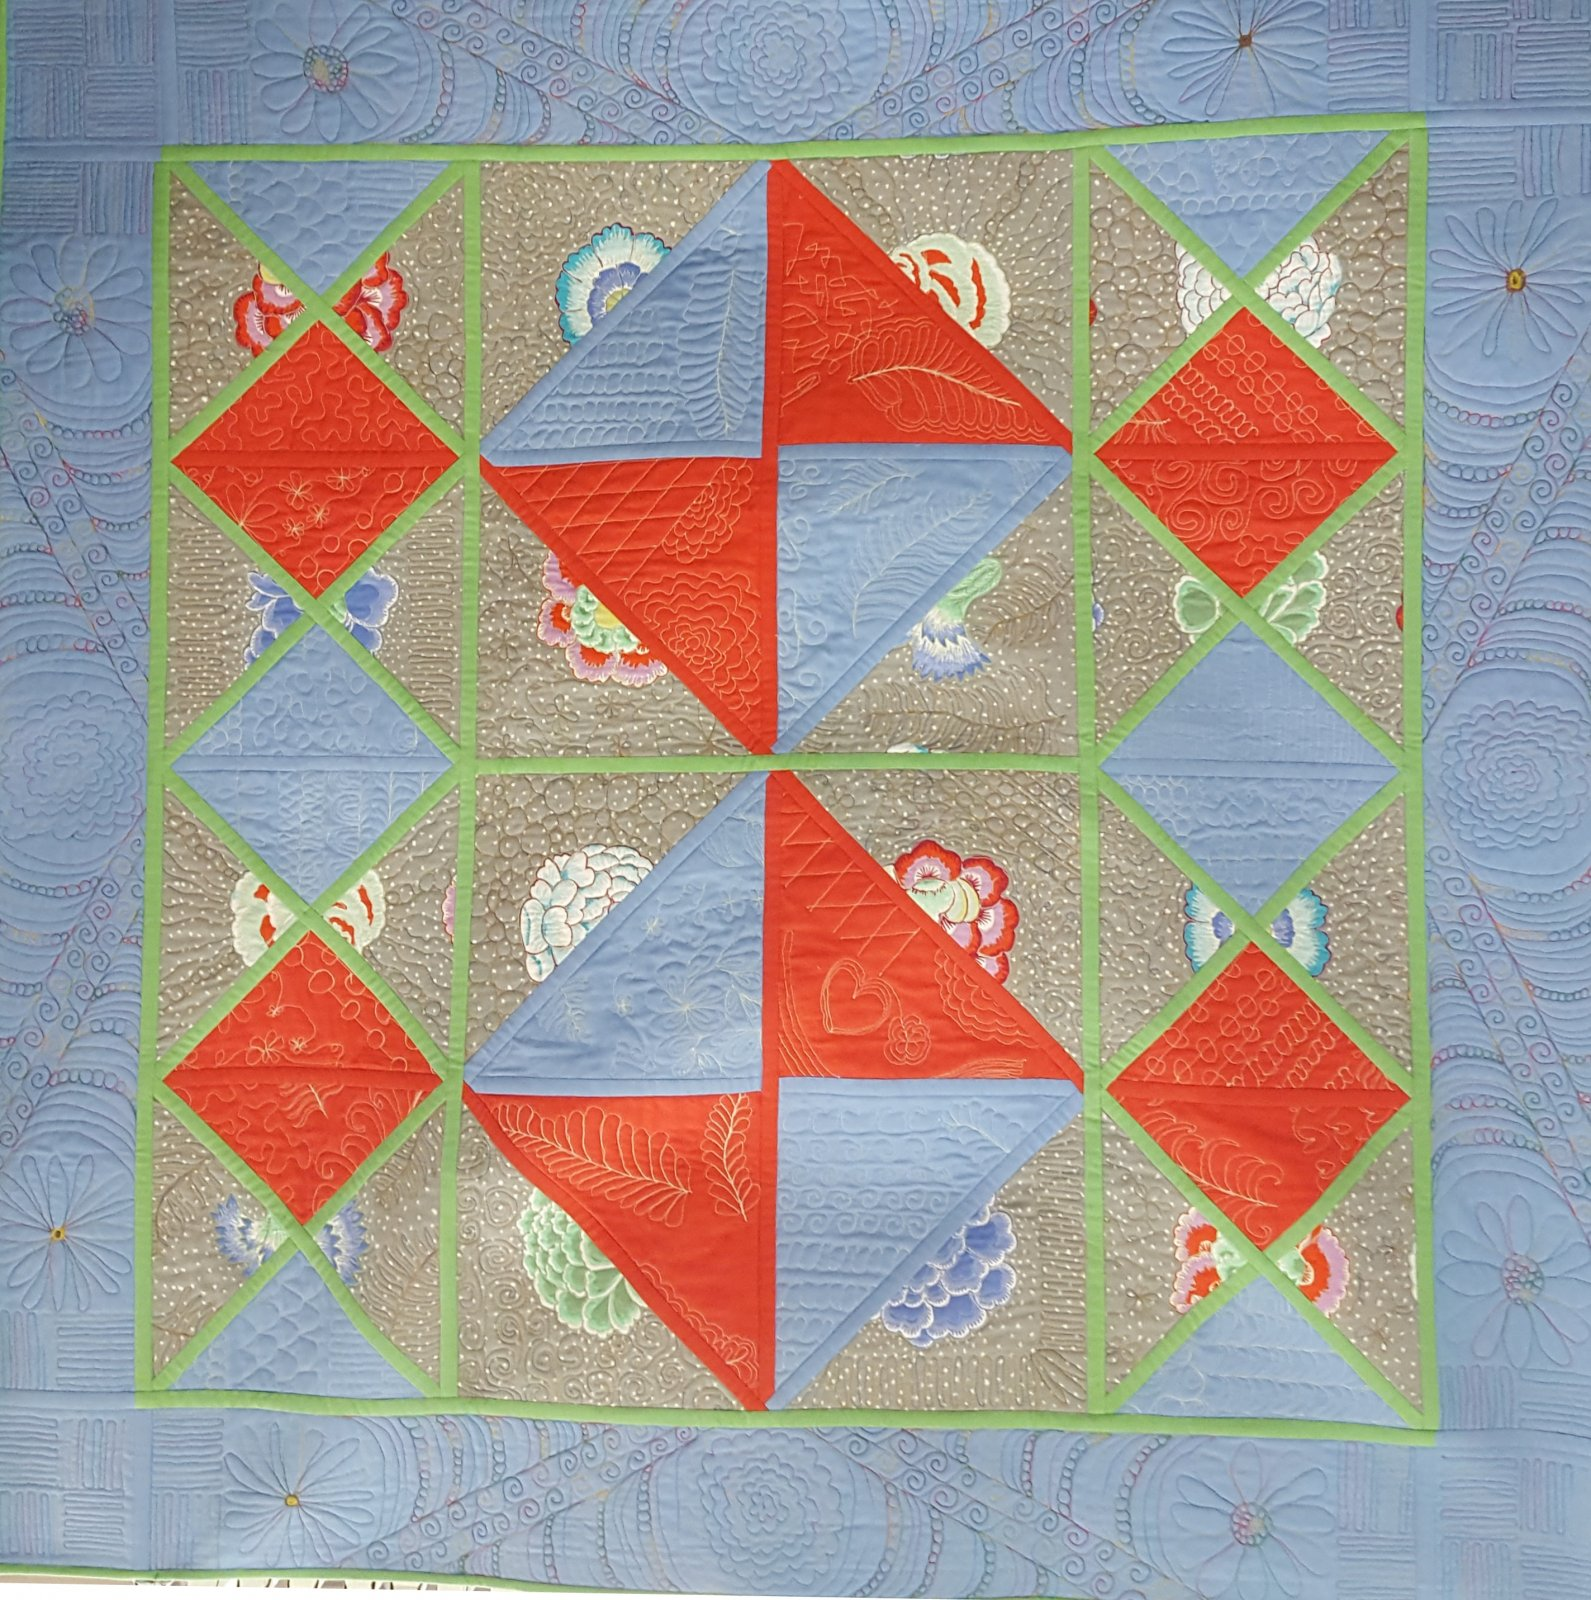 Free Motion Mastery Quilting: Learn to Free Motion in 3 months ... : learn quilting - Adamdwight.com